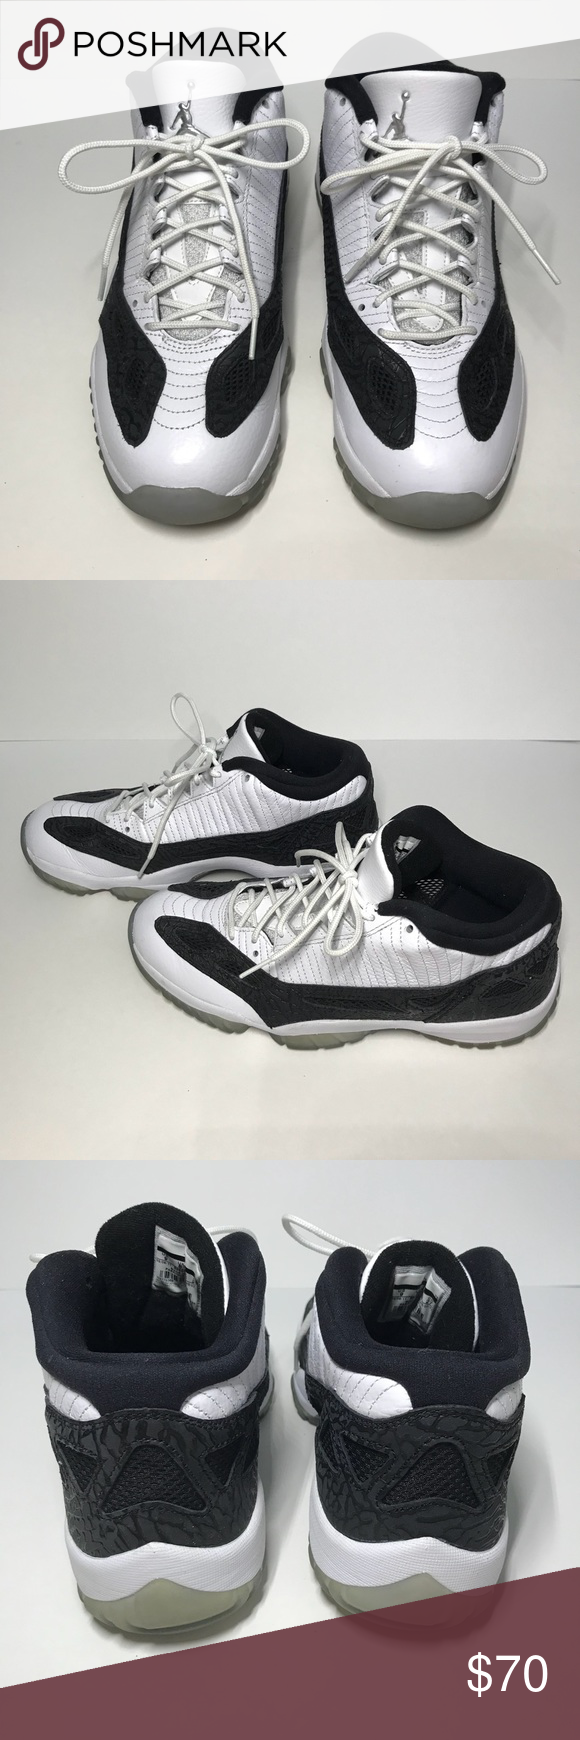 d0df60bf6ad9 Nike Air Jordan Retro Low 11 s Nike Air Jordan Retro Low 11 s. Sells on flight  club for  275. Size  Men s 9 Flaws  Normal slight wear on sole and midsole